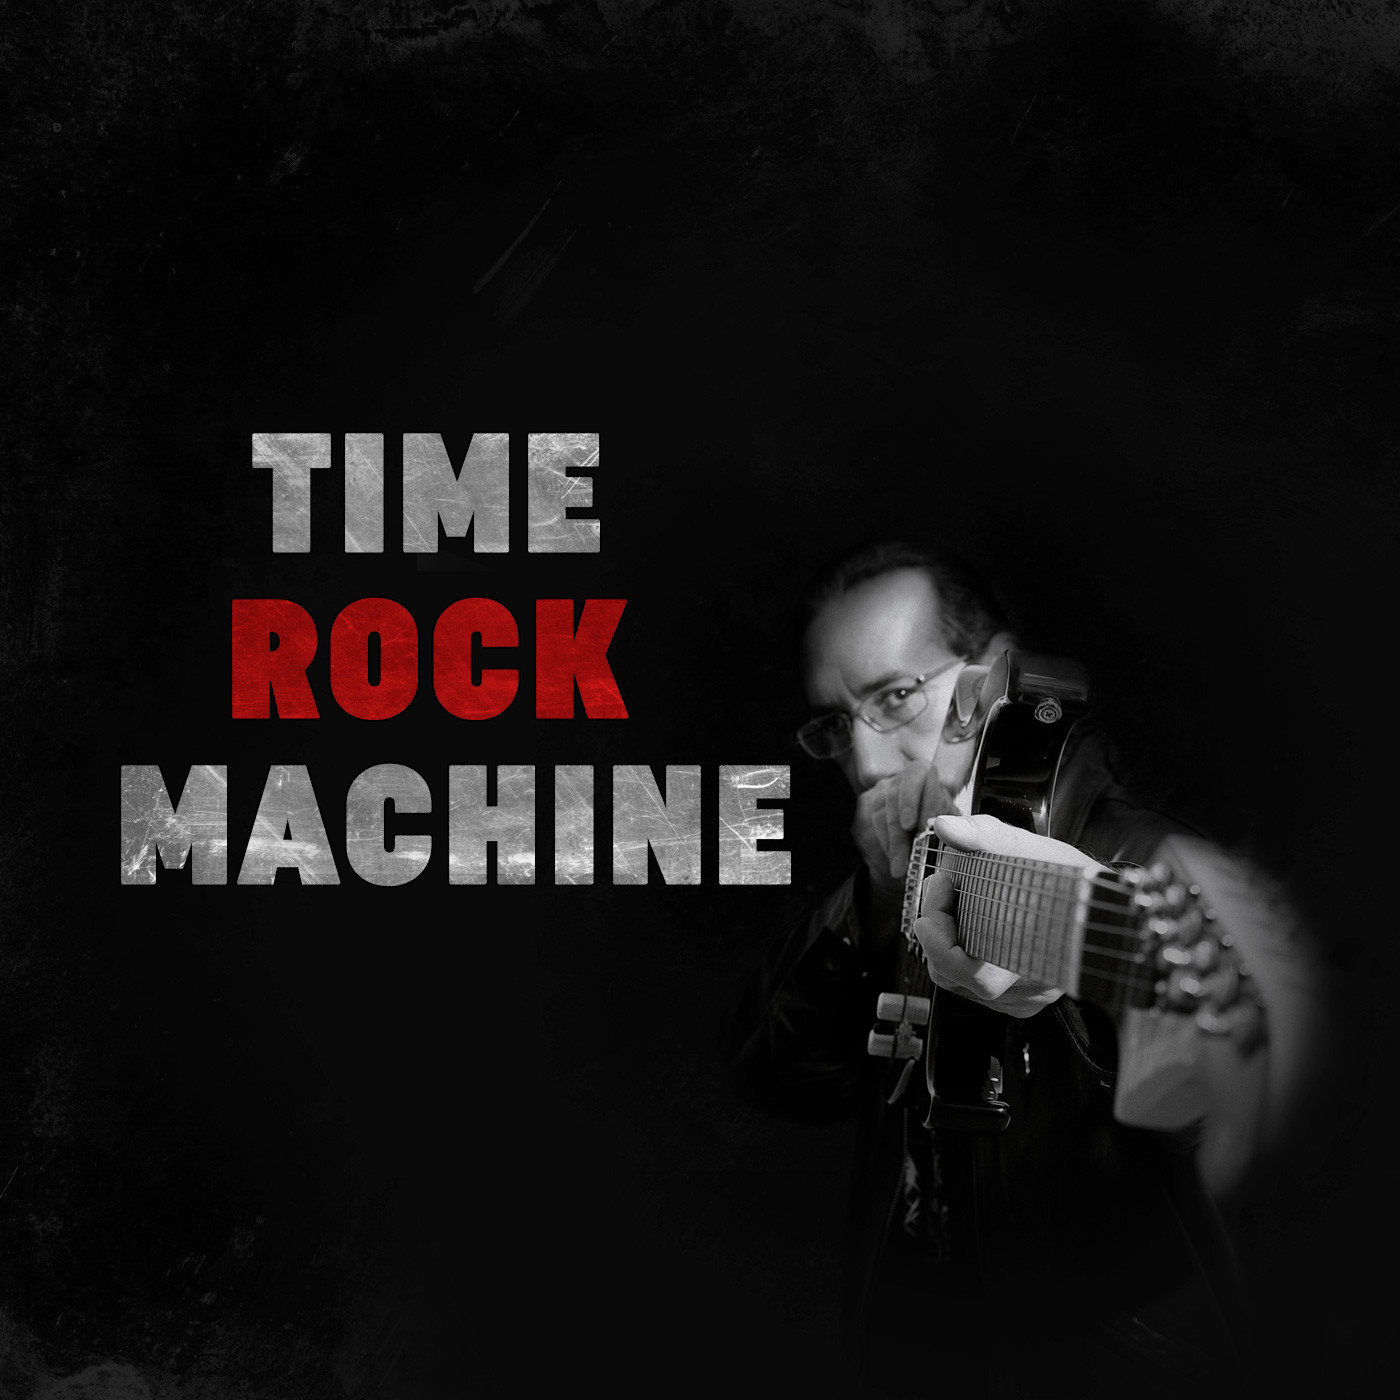 Time Rock machine: Tyketto 1 (04/09/20)